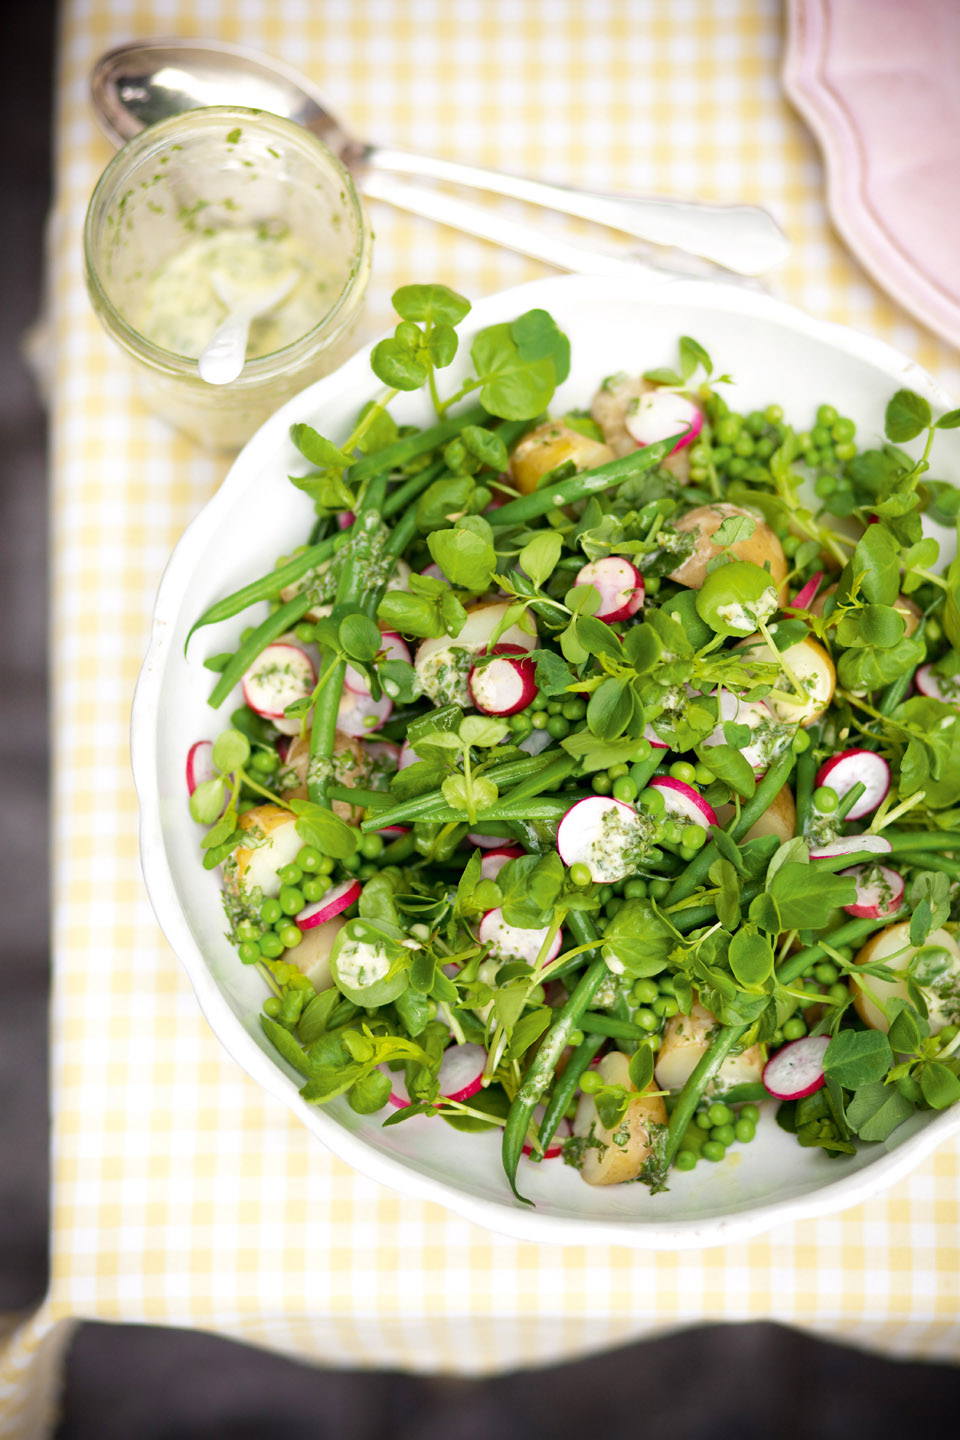 Green bean and pea salad with salad cream dressing - delicious. magazine